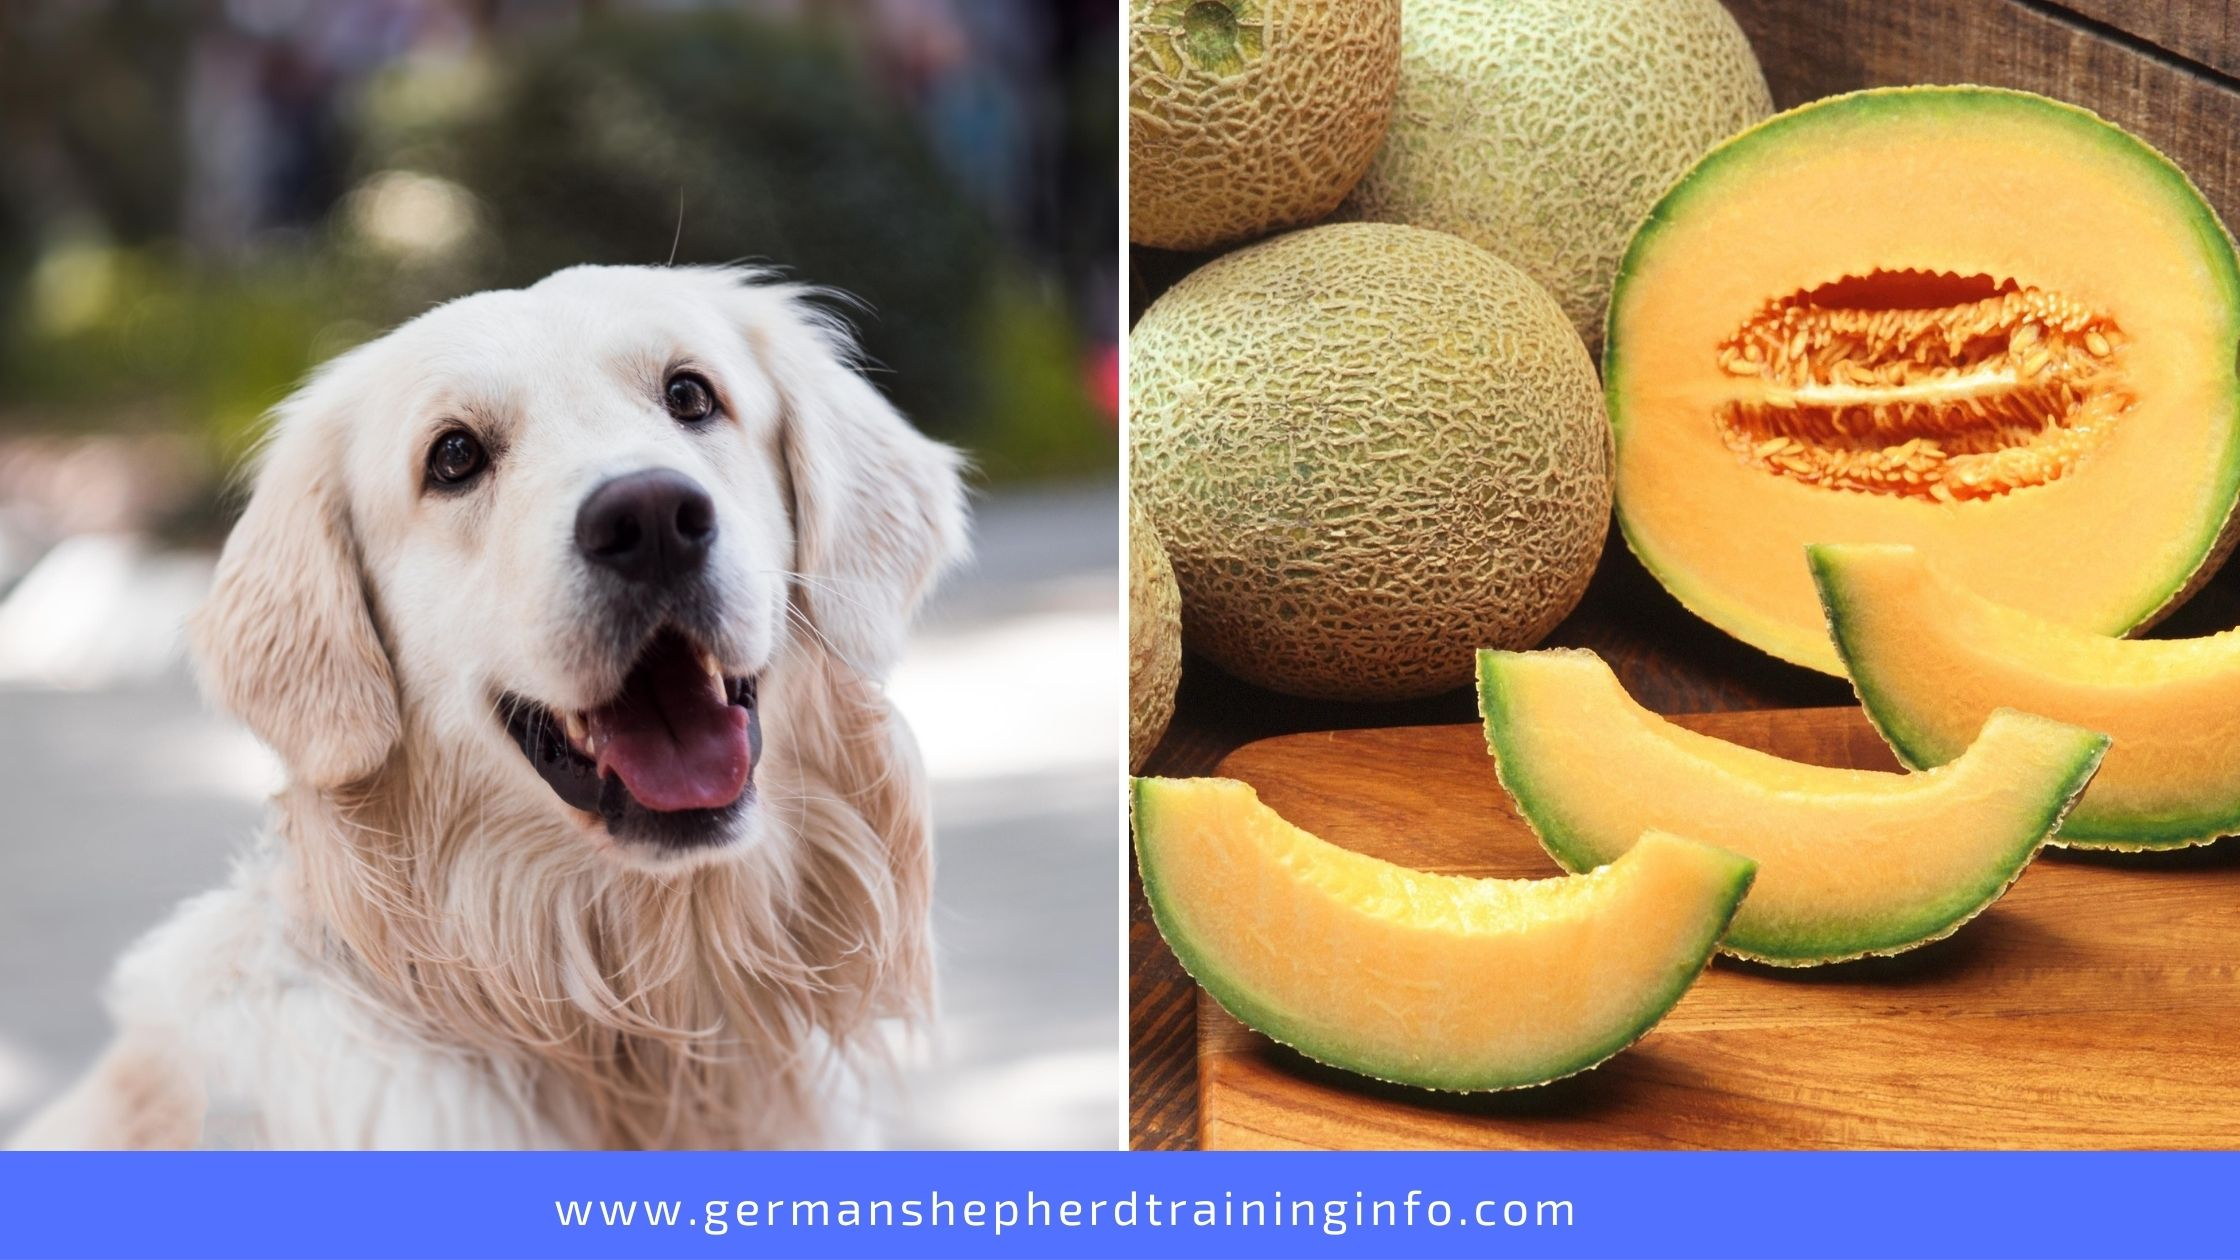 Can Dogs Eat Cantaloupe Rind?